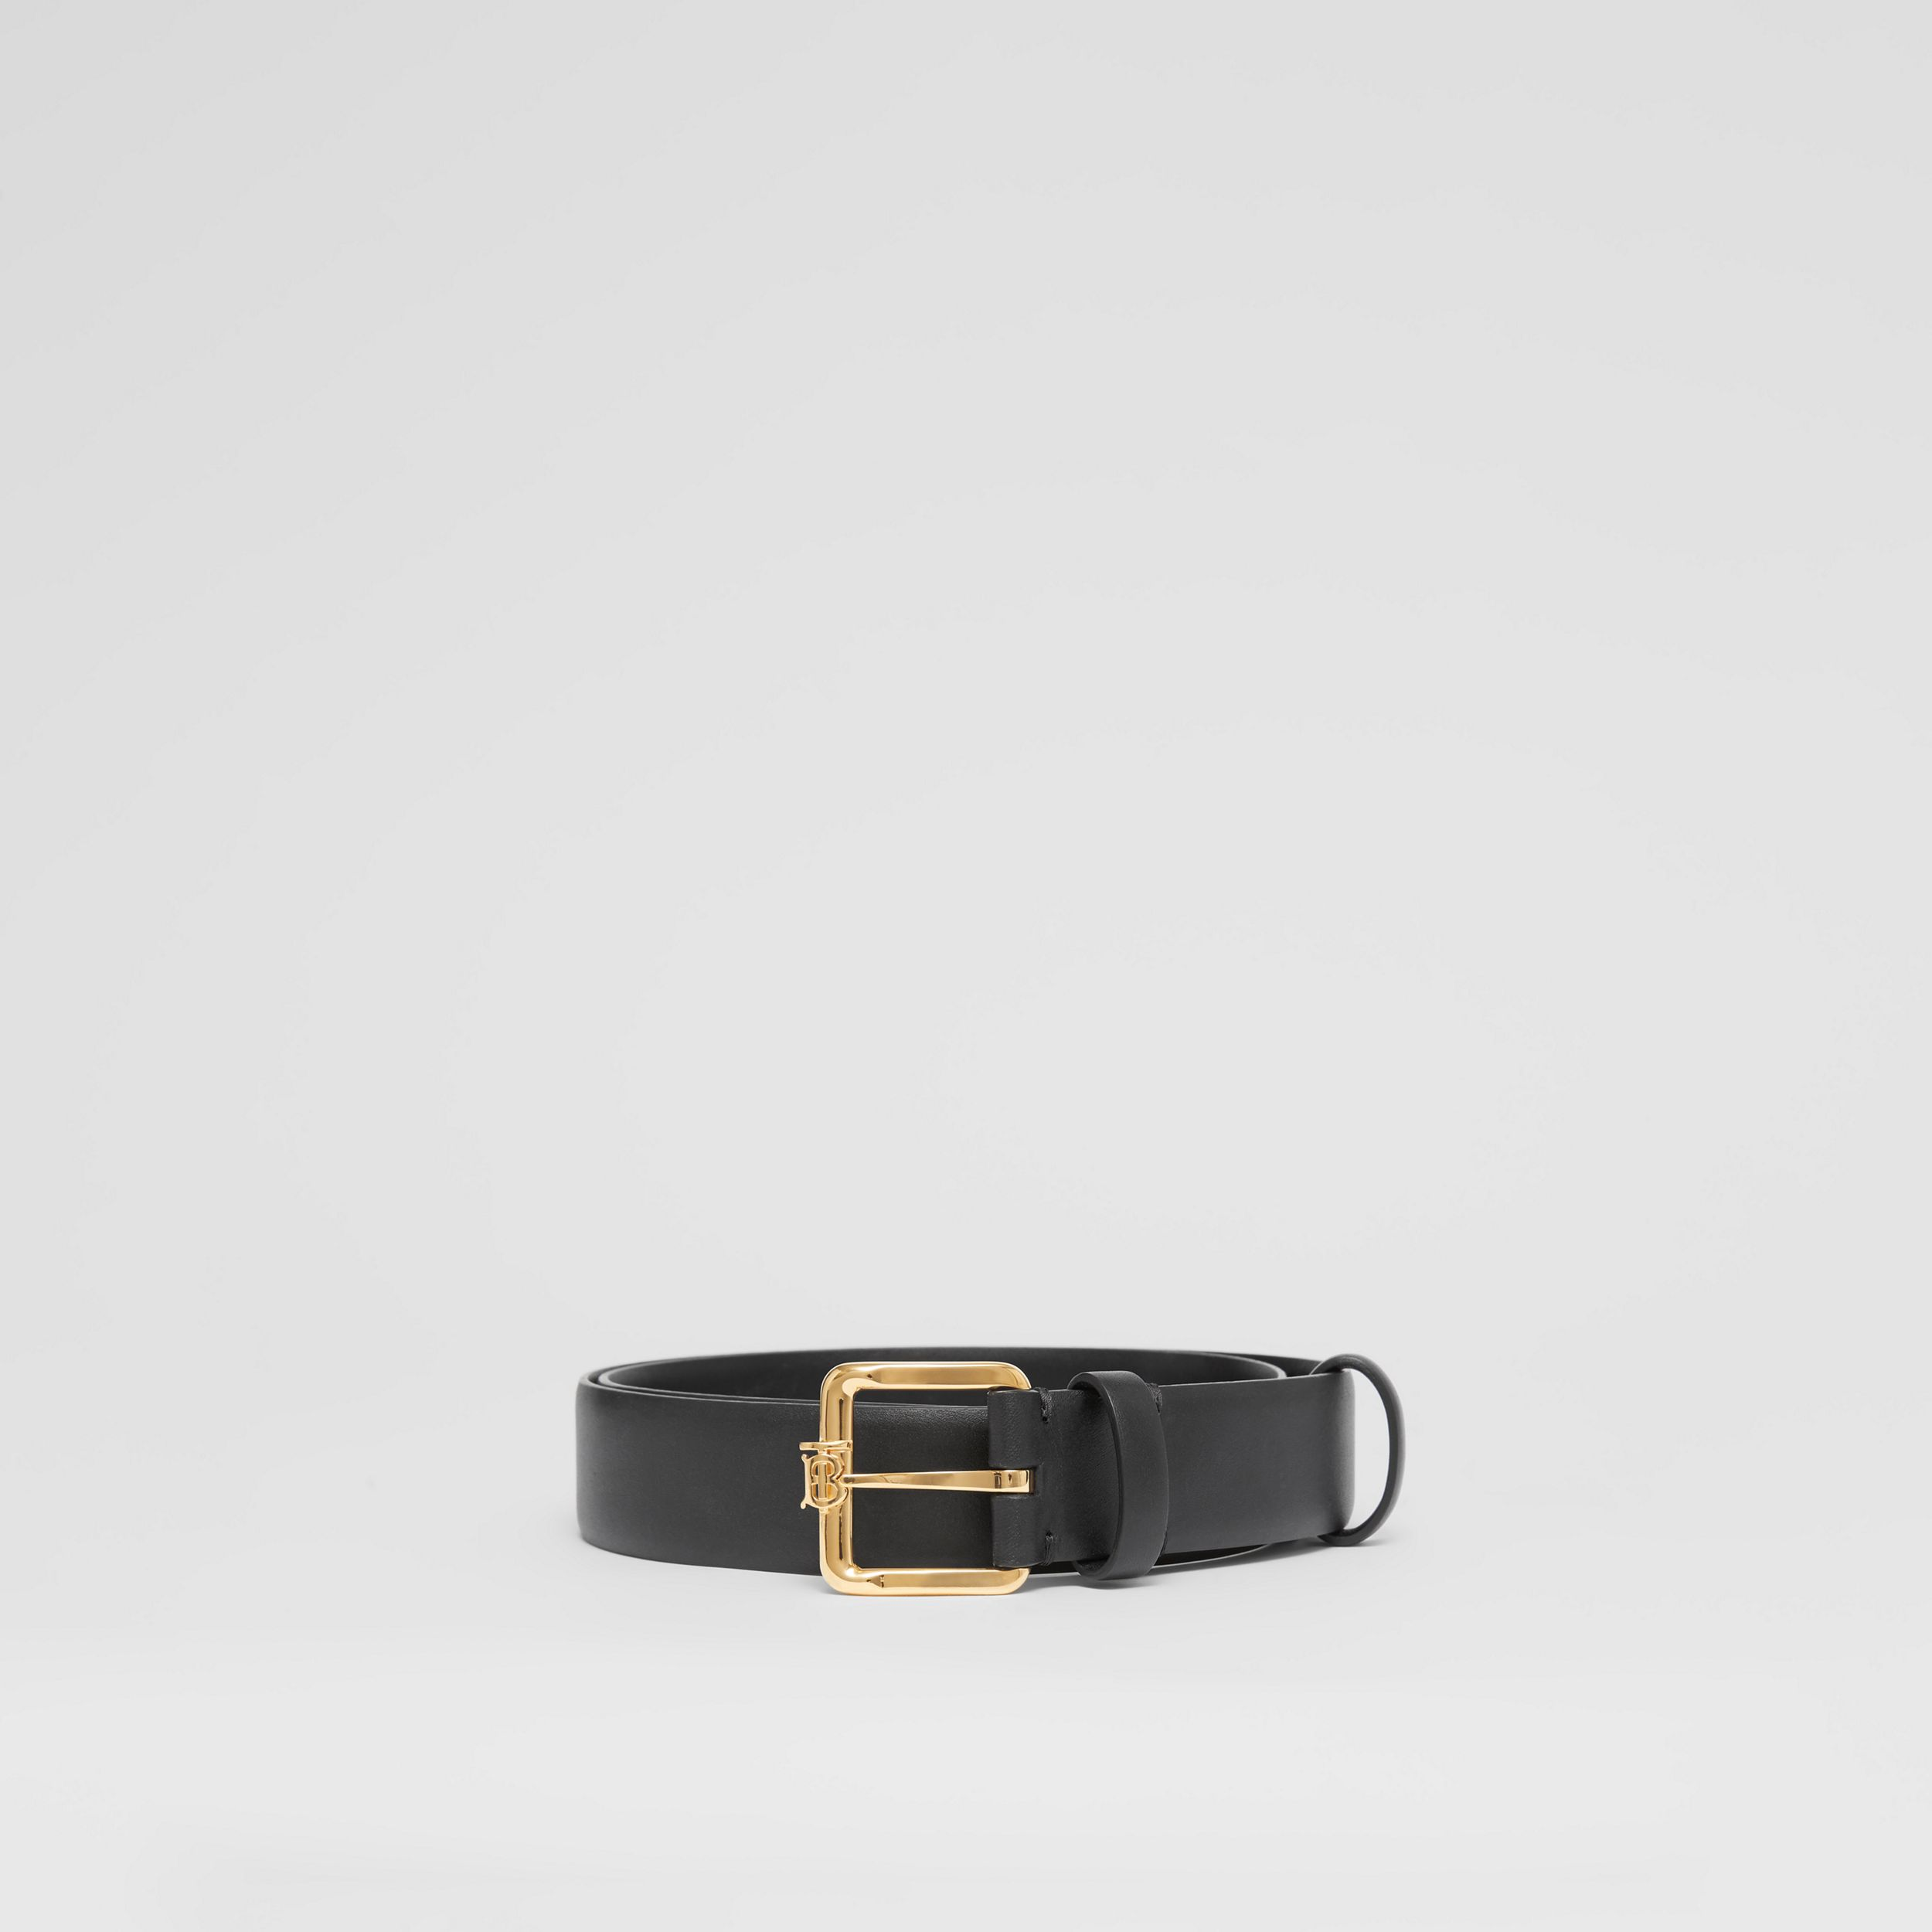 Monogram Motif Leather Belt in Black - Women | Burberry United Kingdom - 4